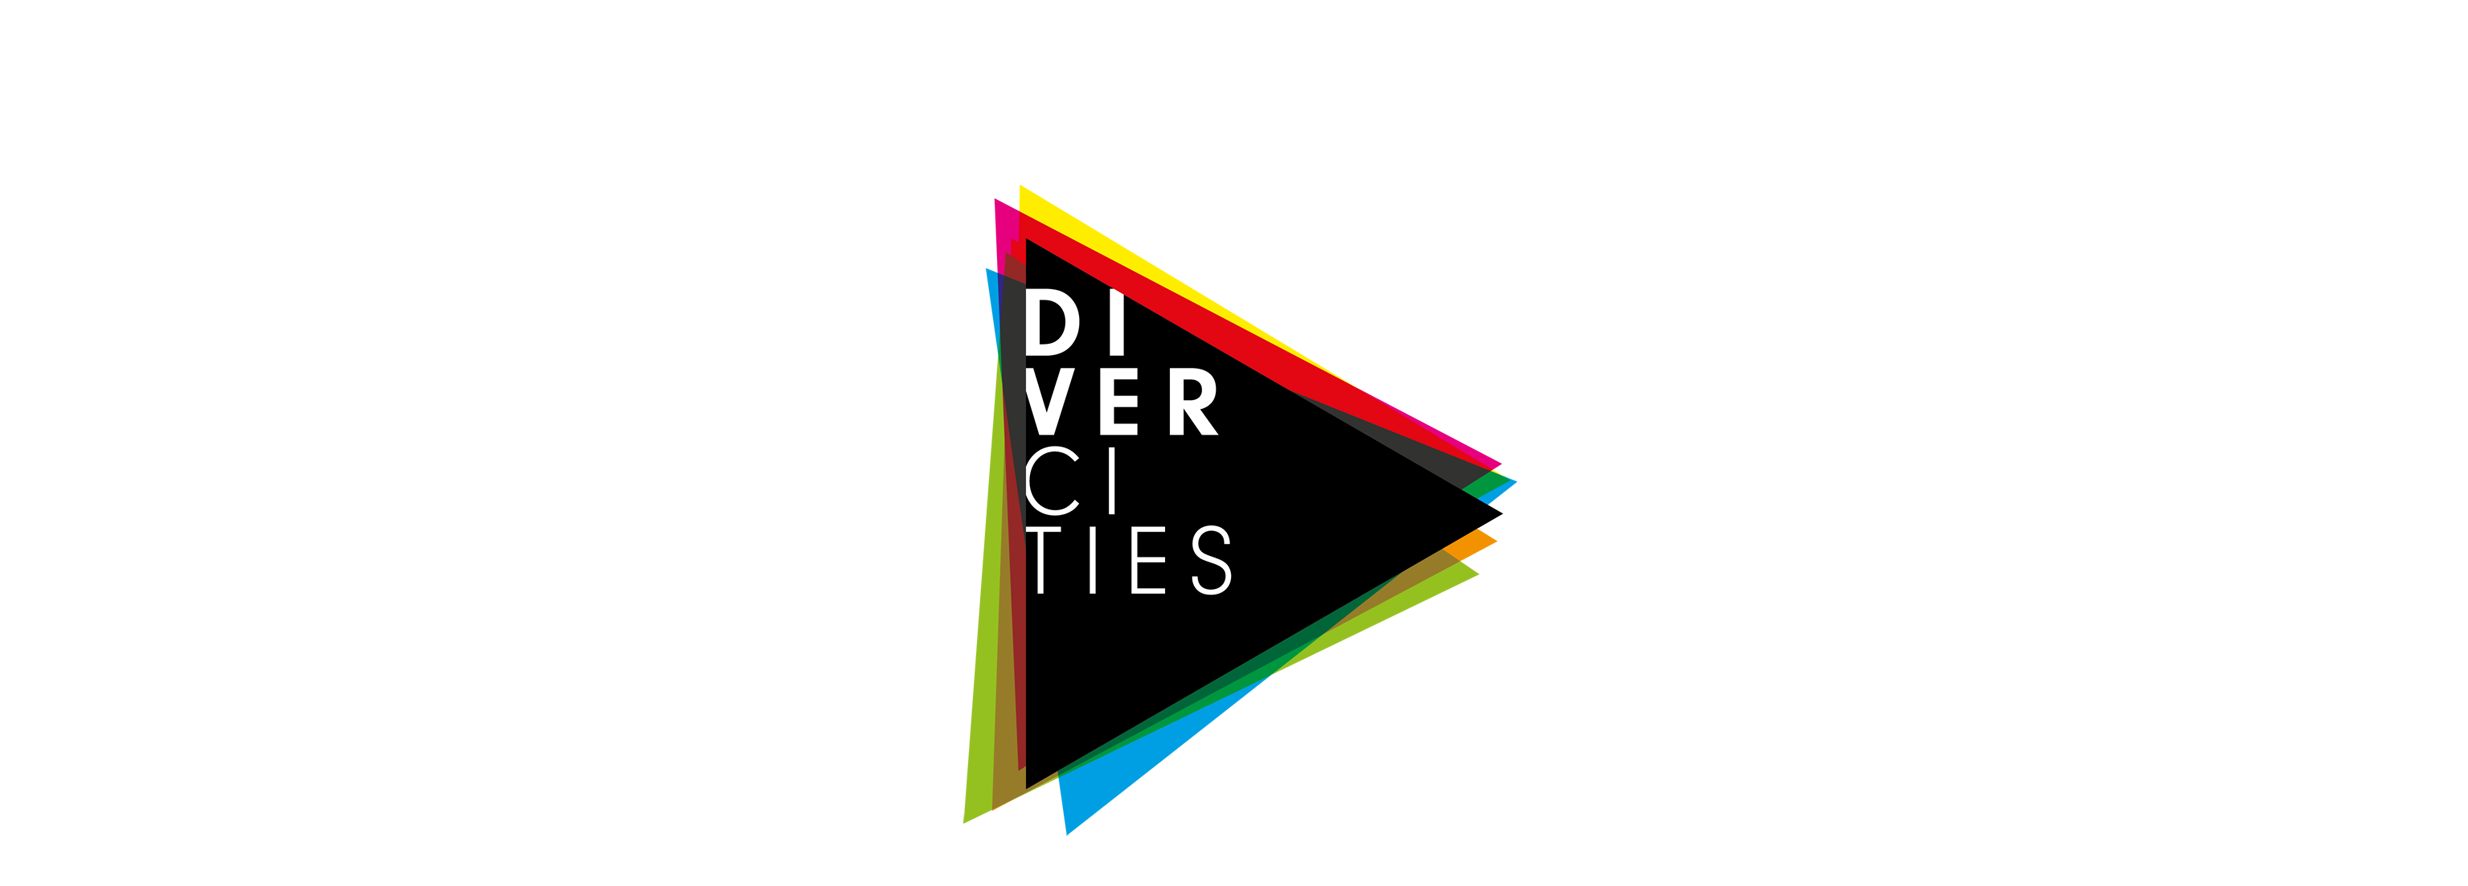 DiverCities uni